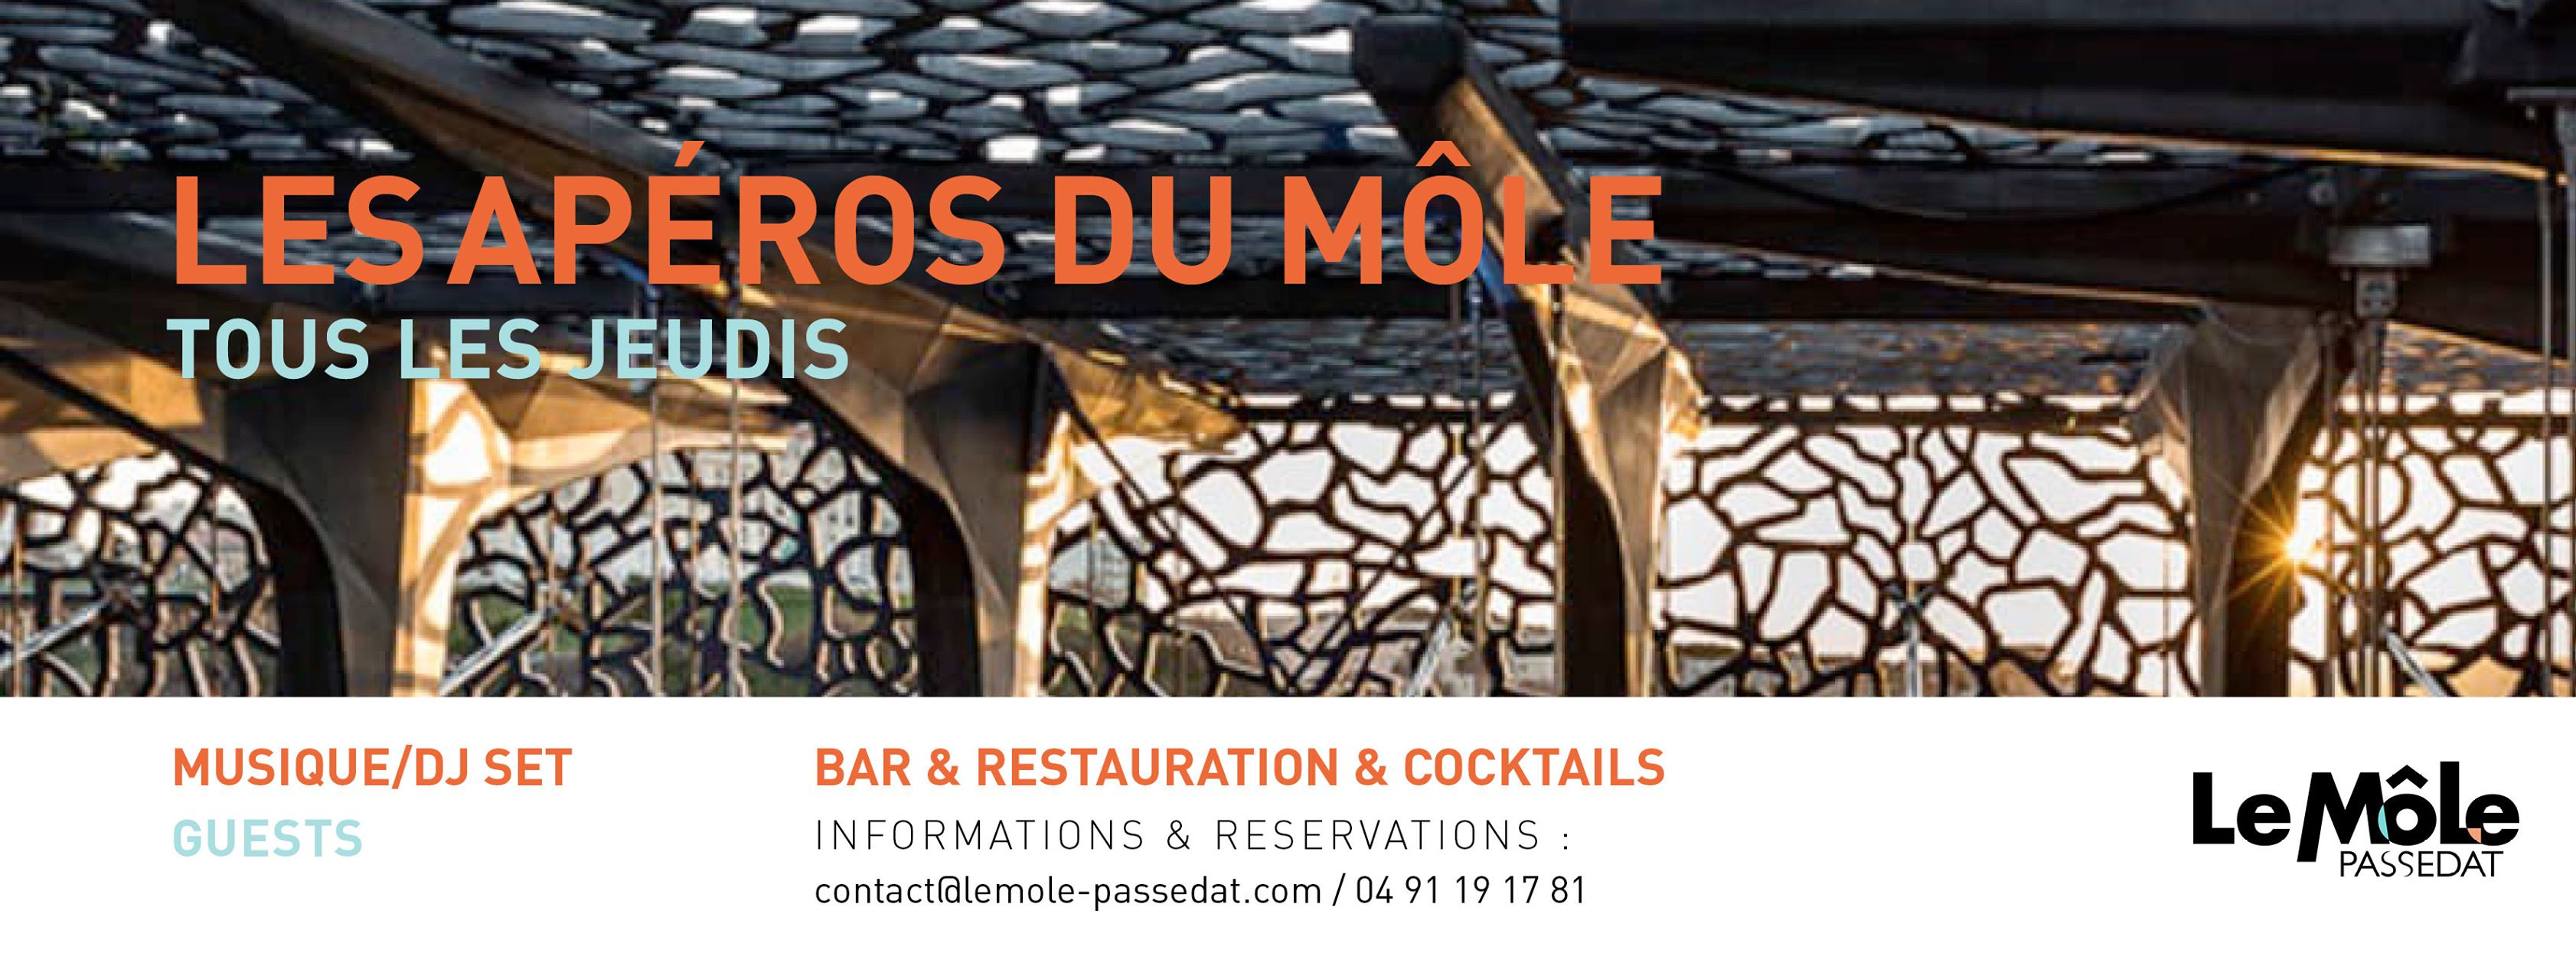 https://the-place-to-be.fr/wp-content/uploads/2020/08/apero-mole-passedat-mucem-marseille-summer-aout-2020.jpg